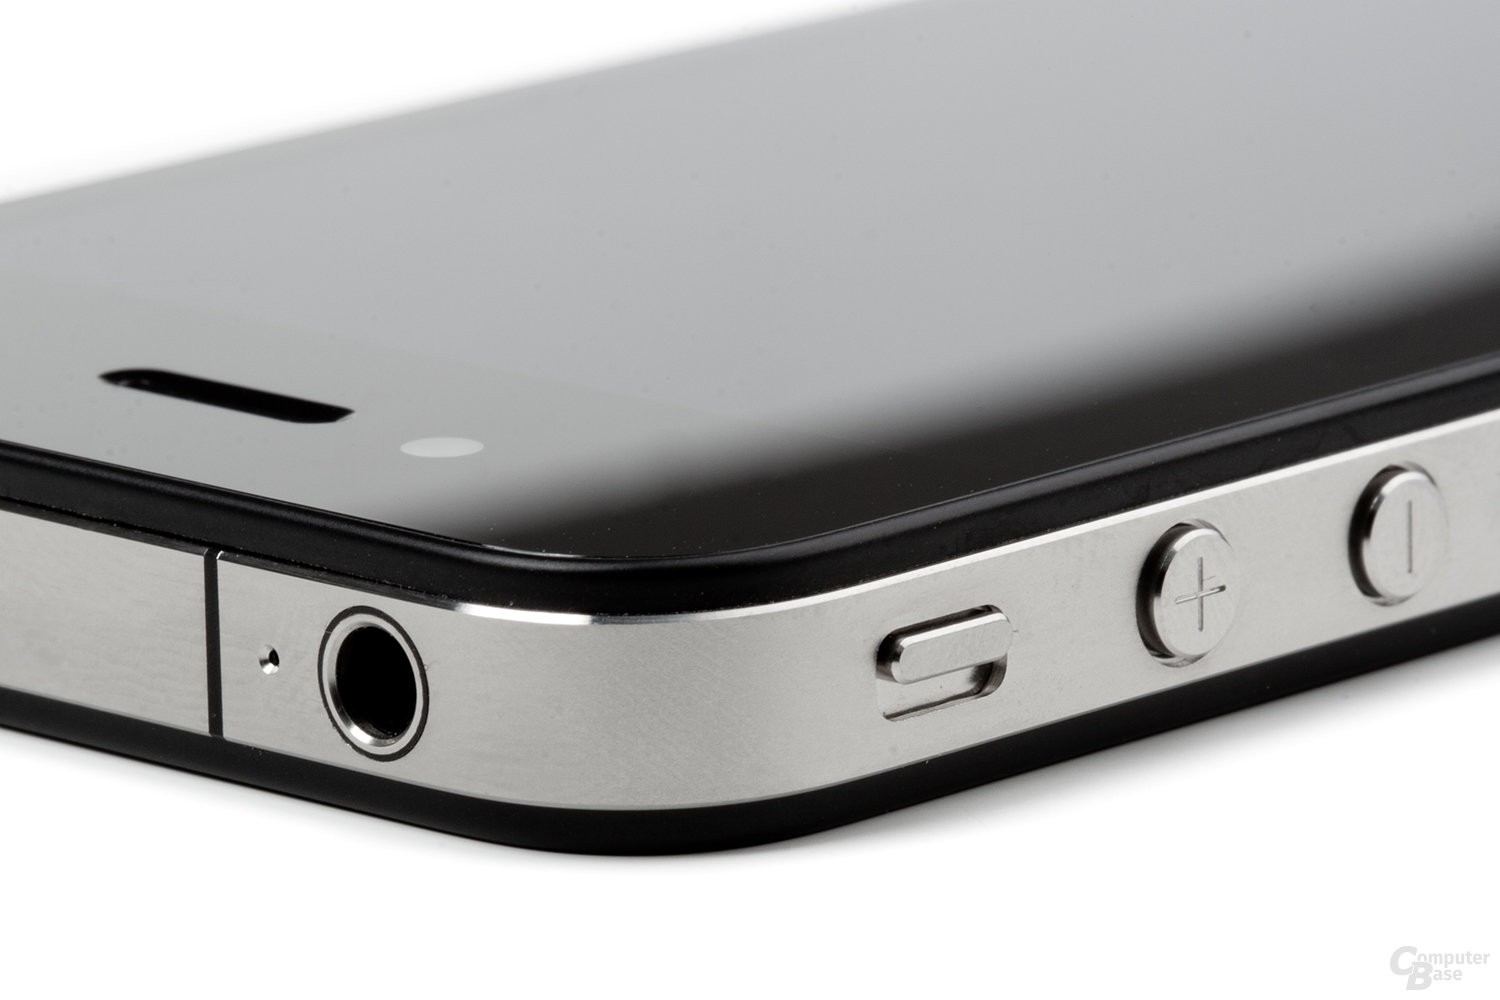 iPhone 4: Audio-Ausgang und Buttons